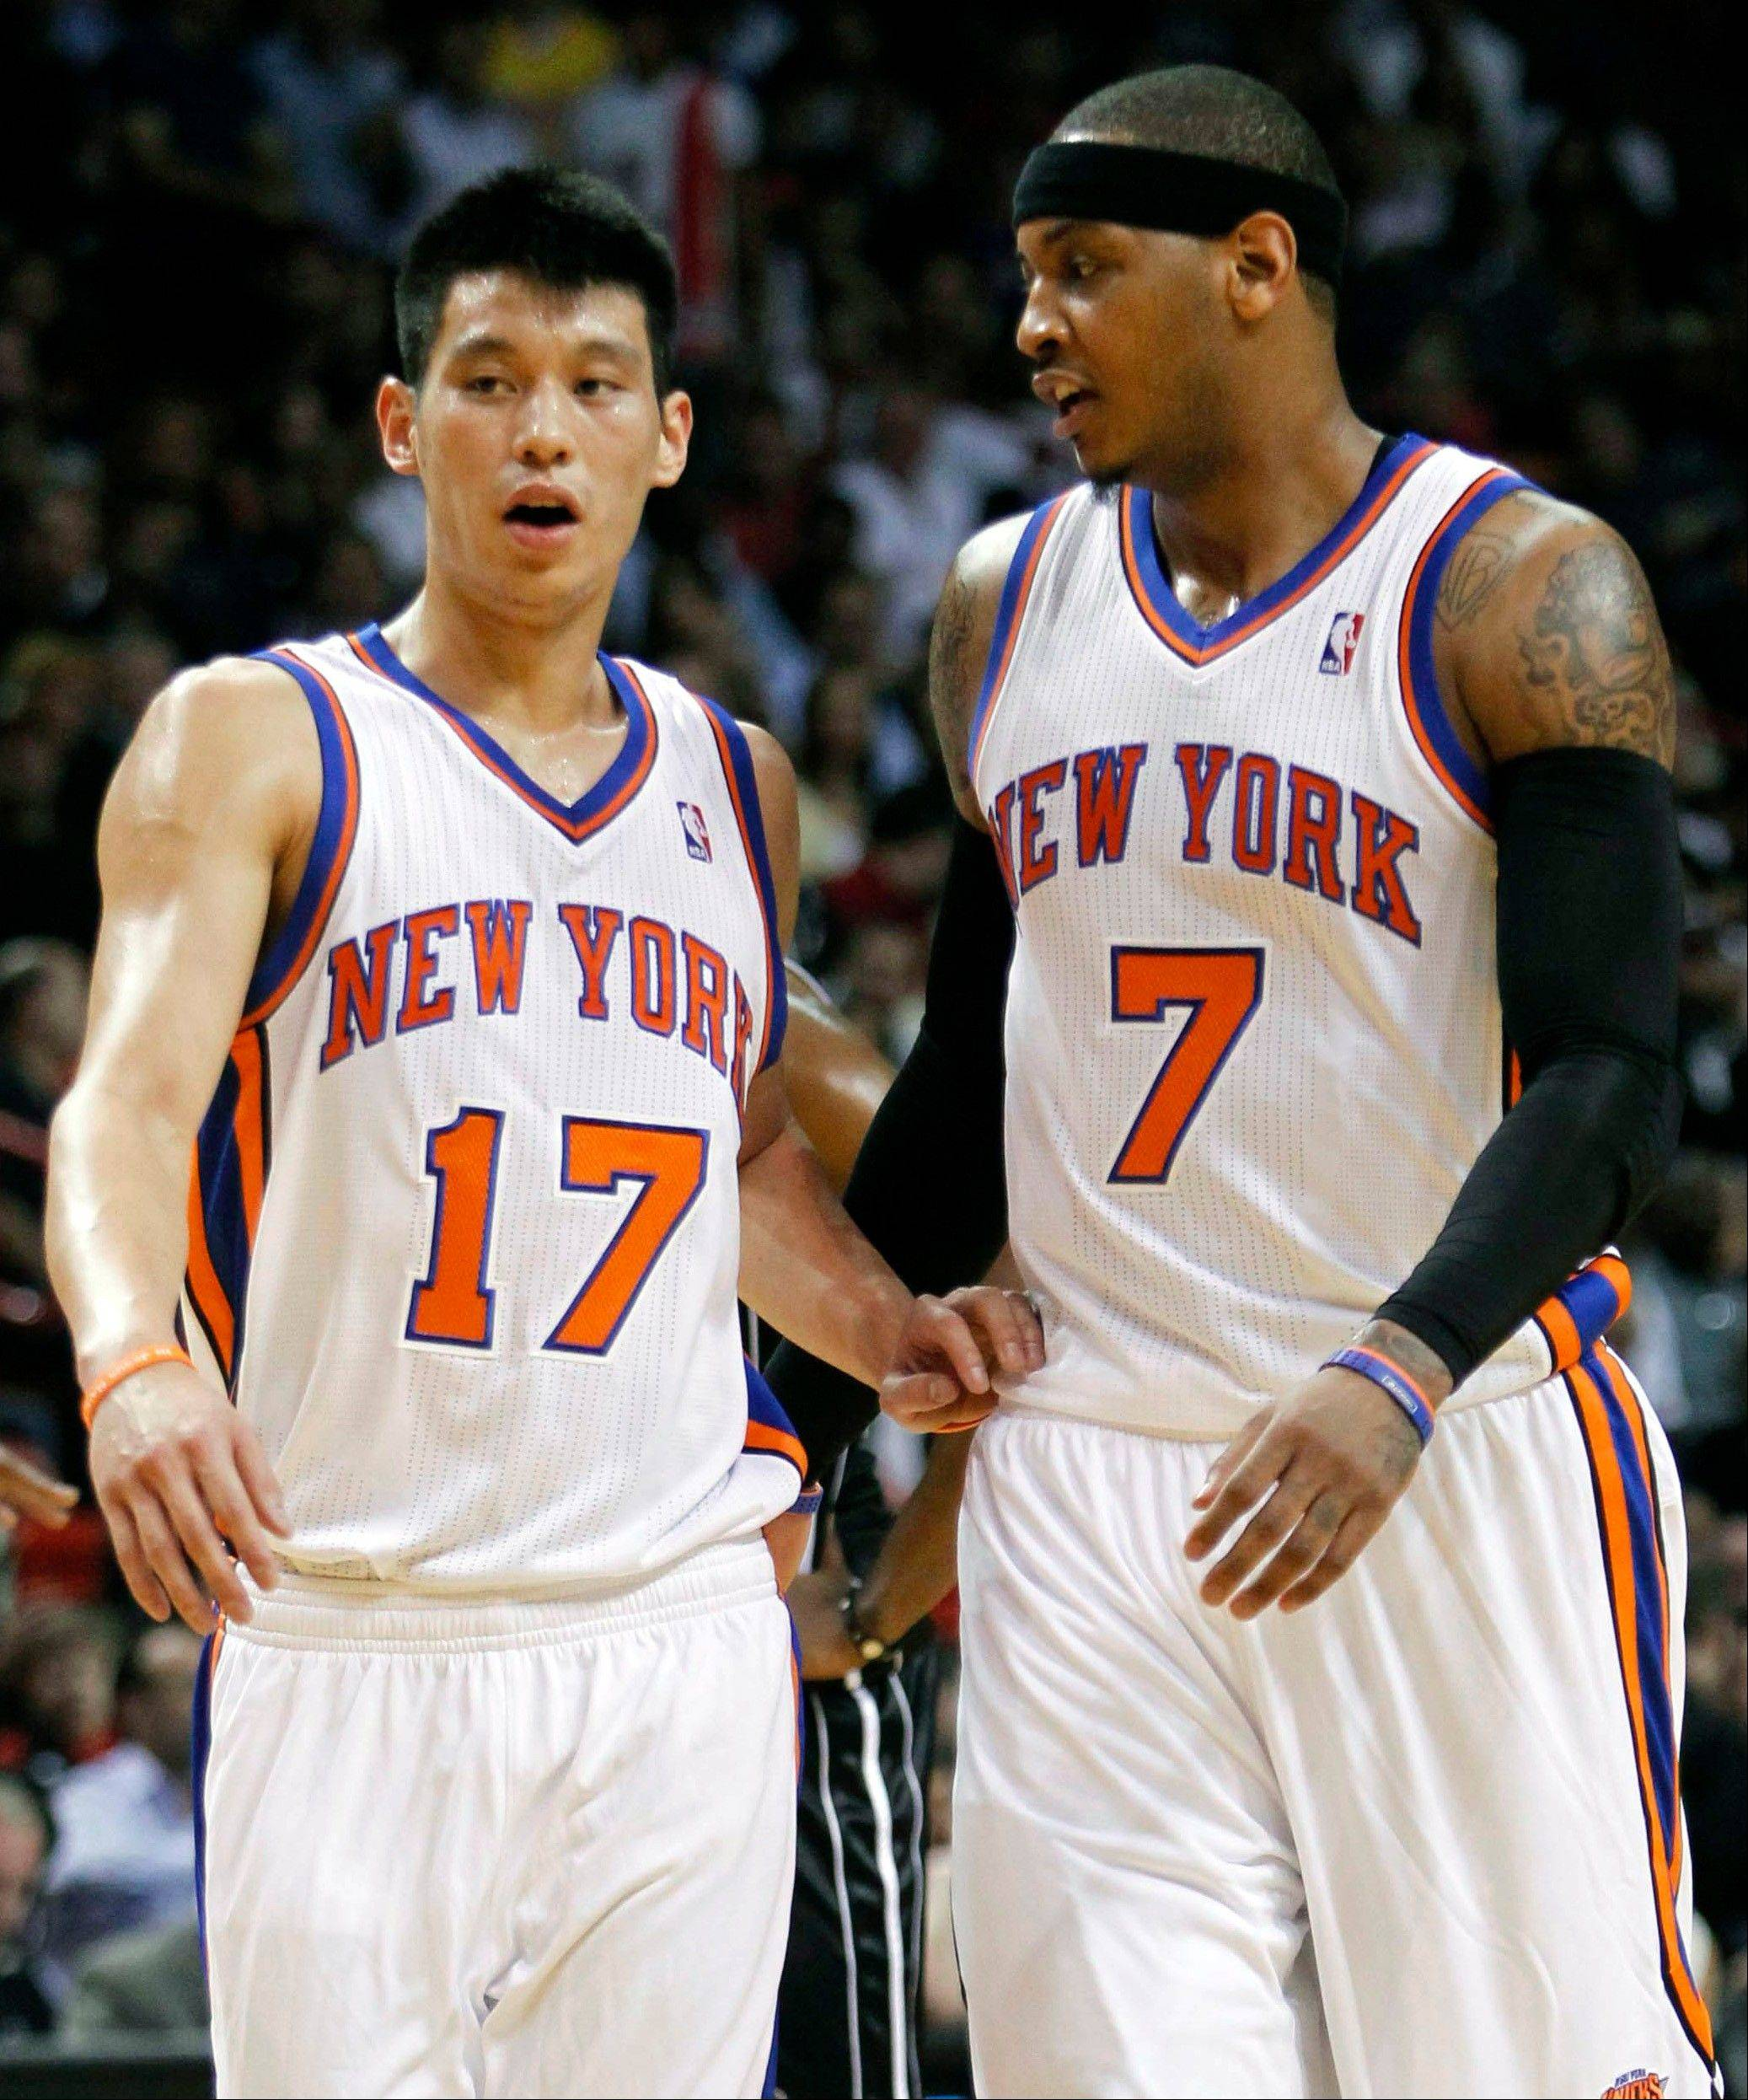 Linsanity could be put to rest in New York when the clock strikes midnight. That's the deadline the Knicks face to match the daunting offer the Houston Rockets have made to Jeremy Lin, the Harvard point guard who dazzled all of basketball for a brief stretch last season.